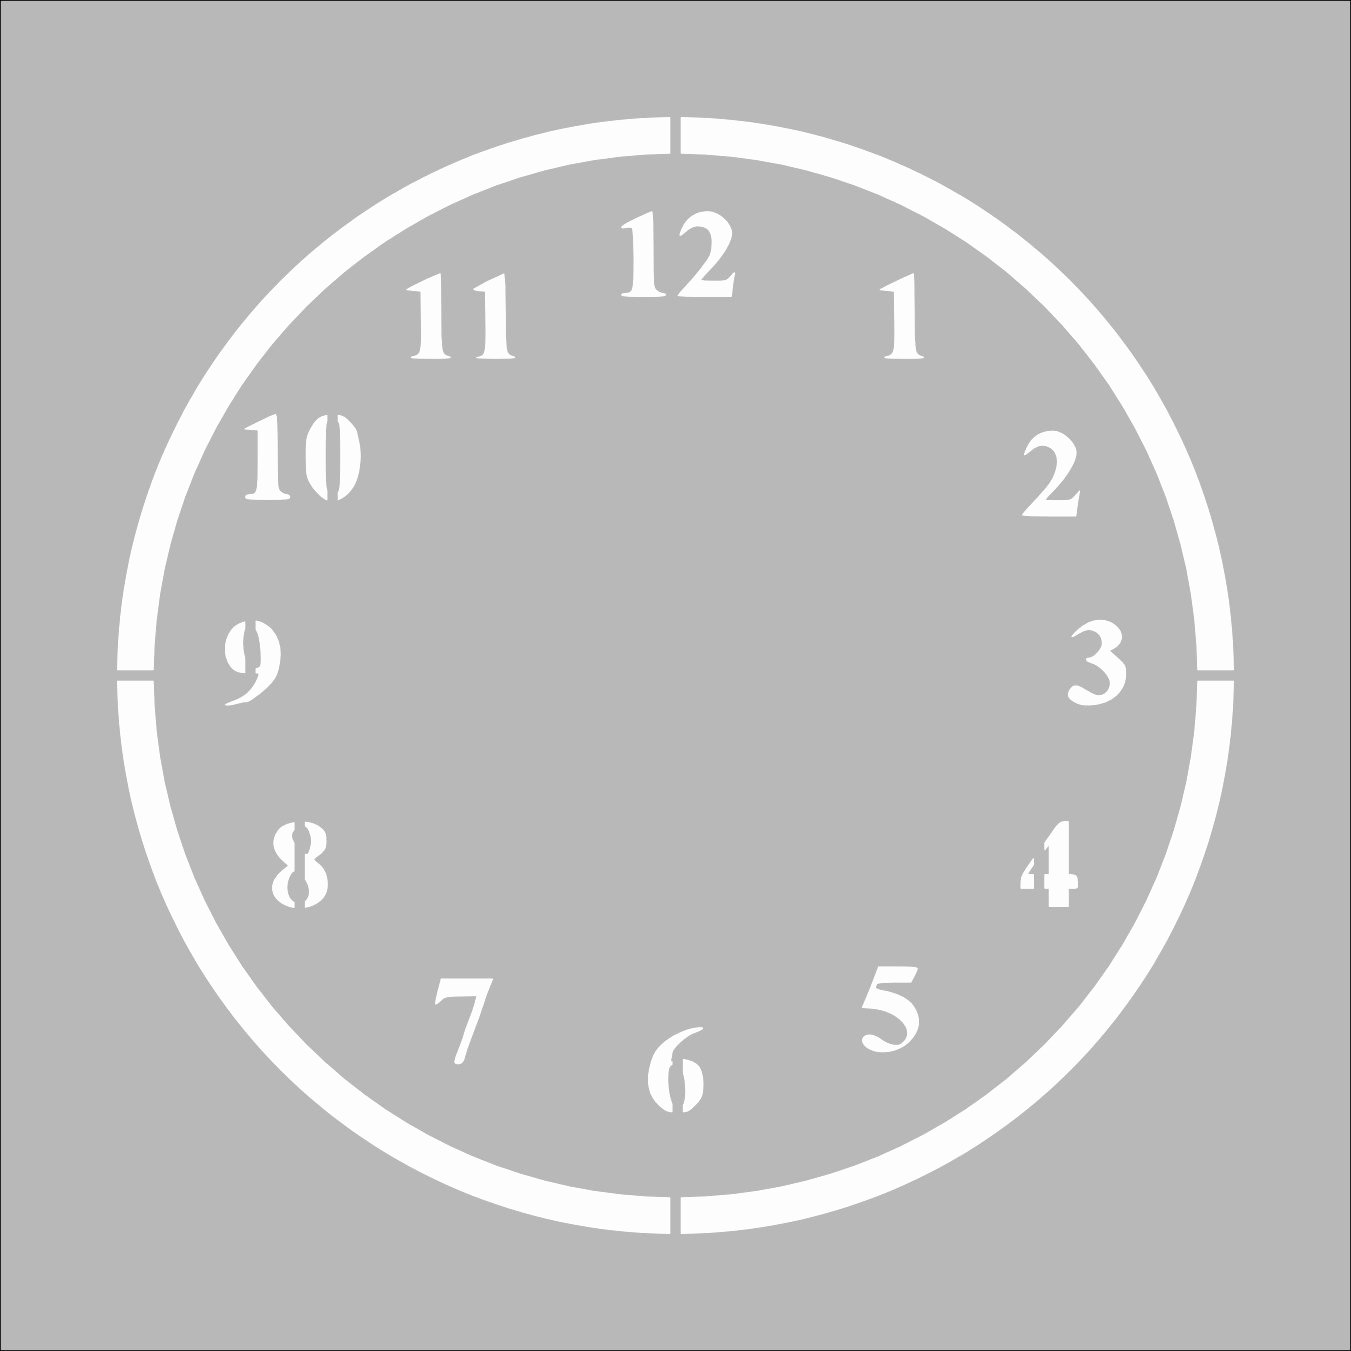 Customizable Clock Face Template Best Of Clock Stencil In Reusable Mylar Small to by Westlondonlaser